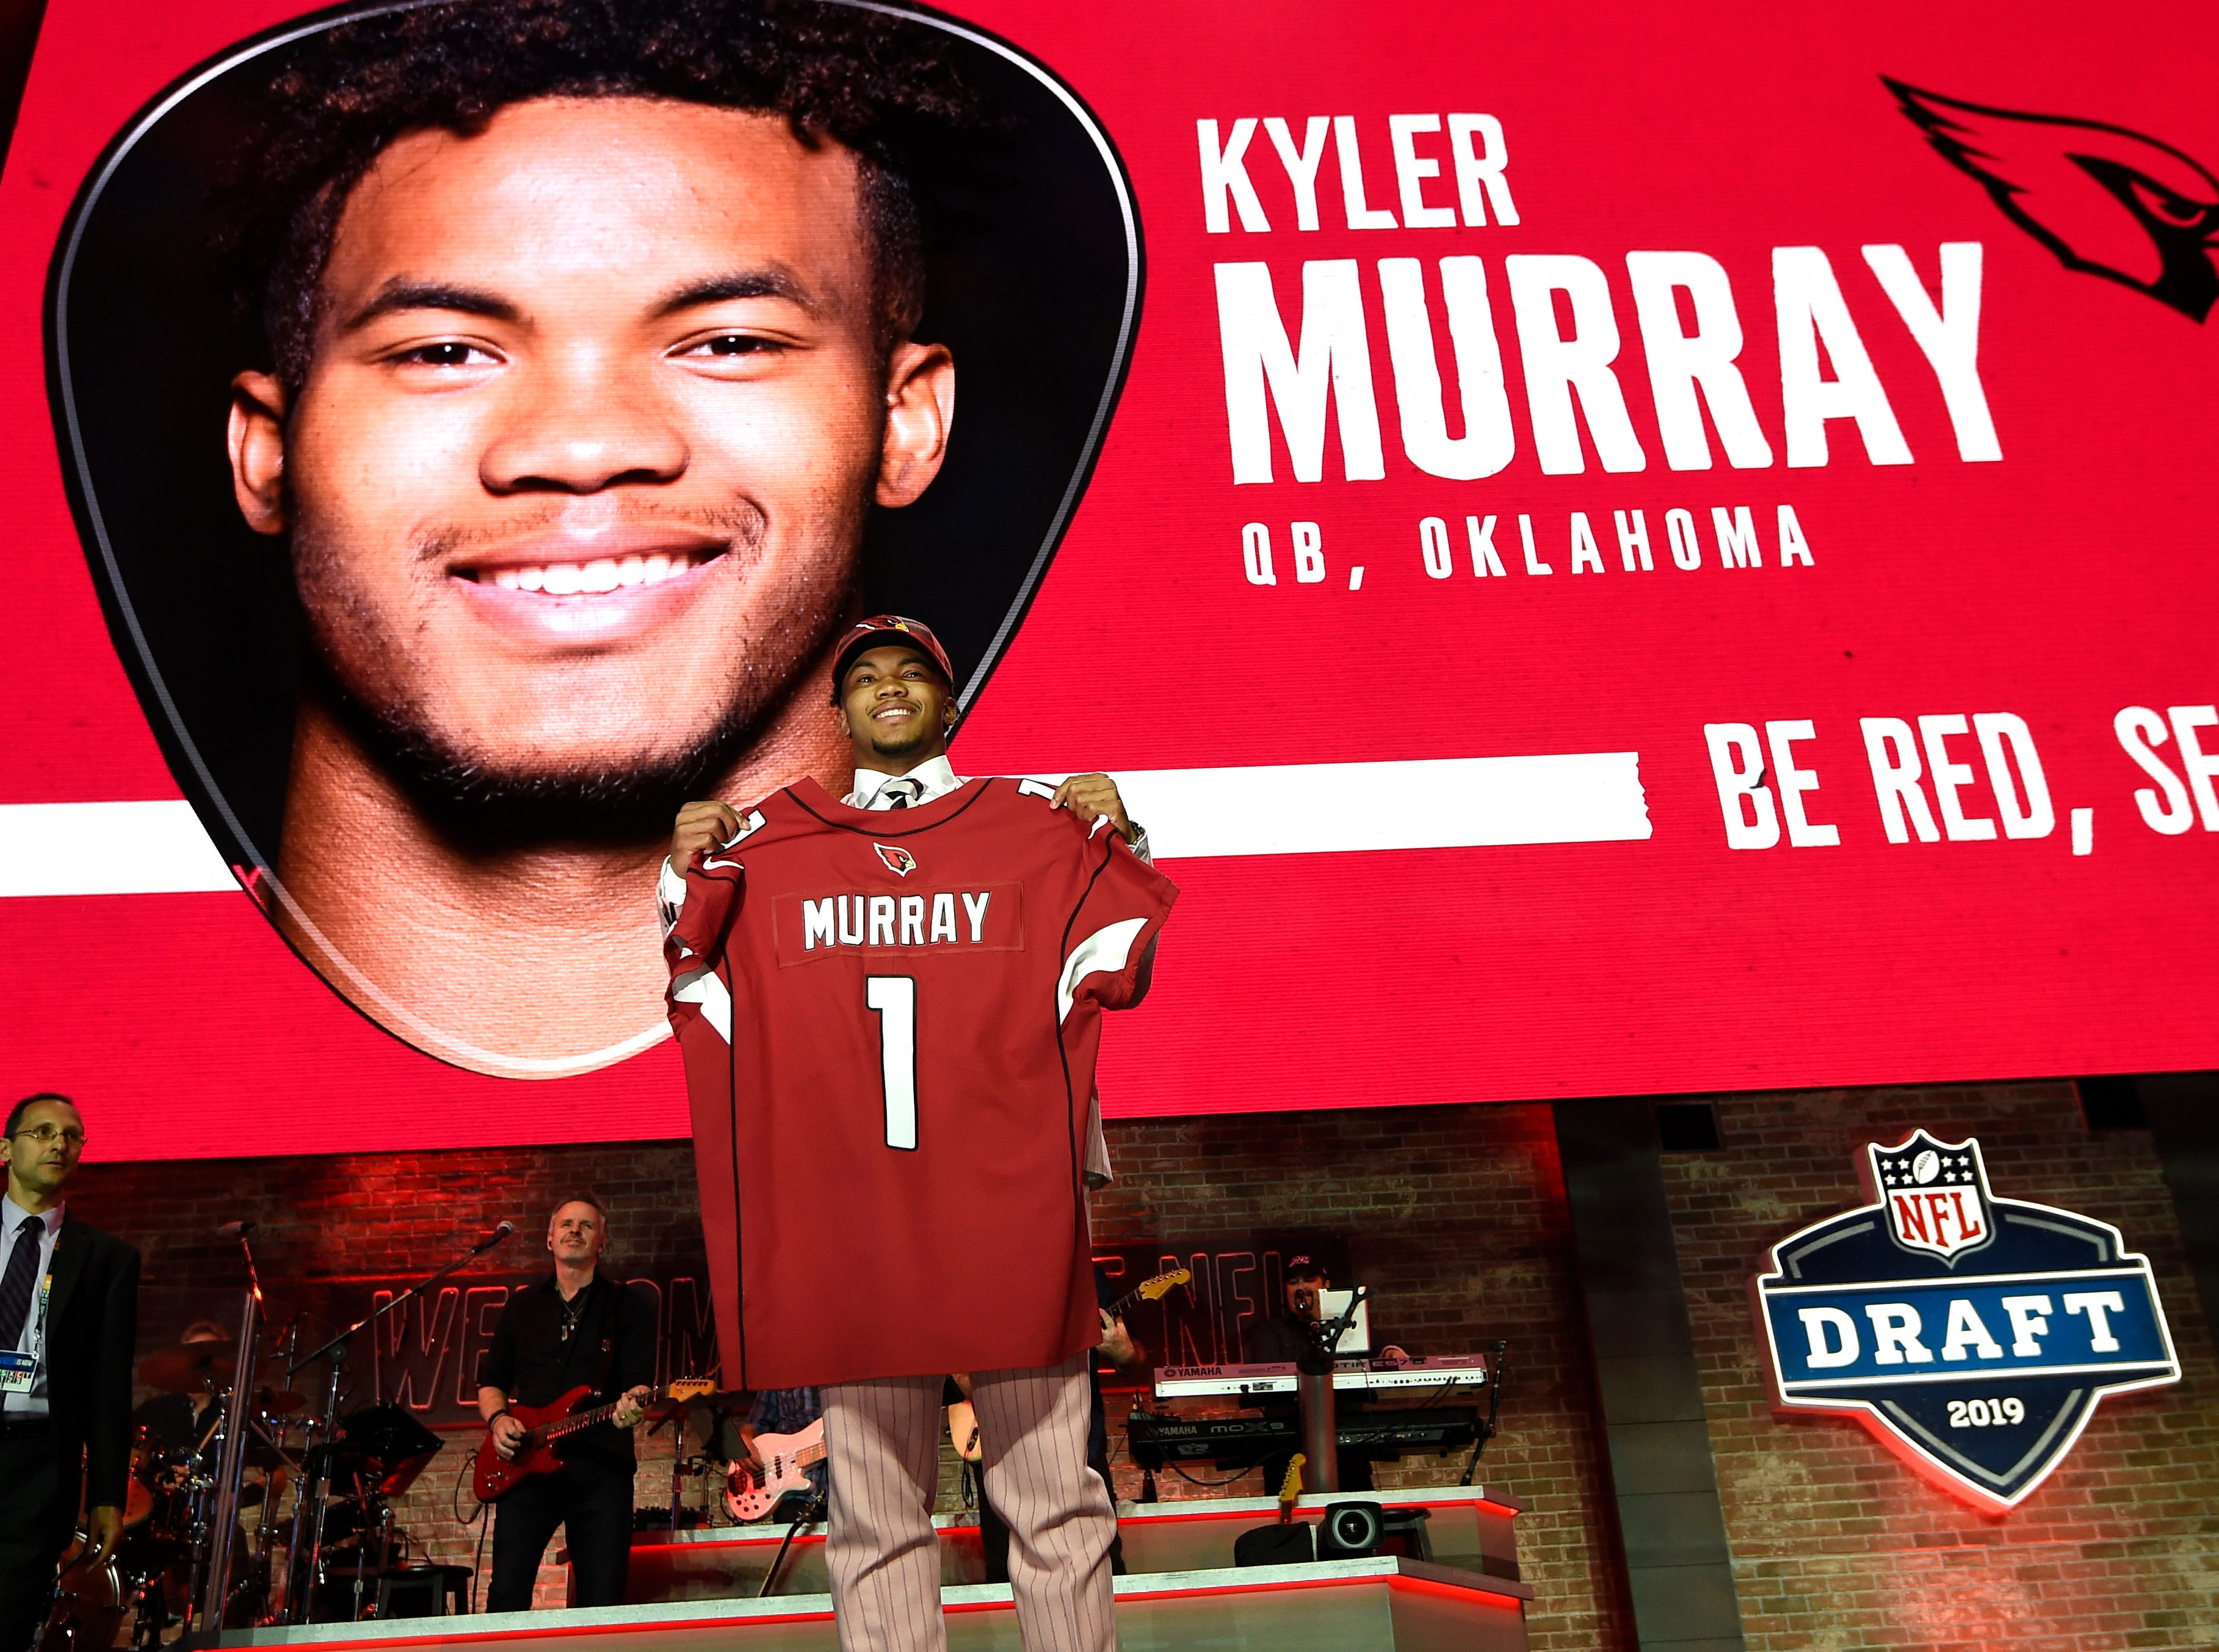 Kyler Murray poses with his new jersey after being picked first by the Arizona Cardinals during the first round of the NFL Draft Thursday, April 25, 2019, in Nashville, Tenn.